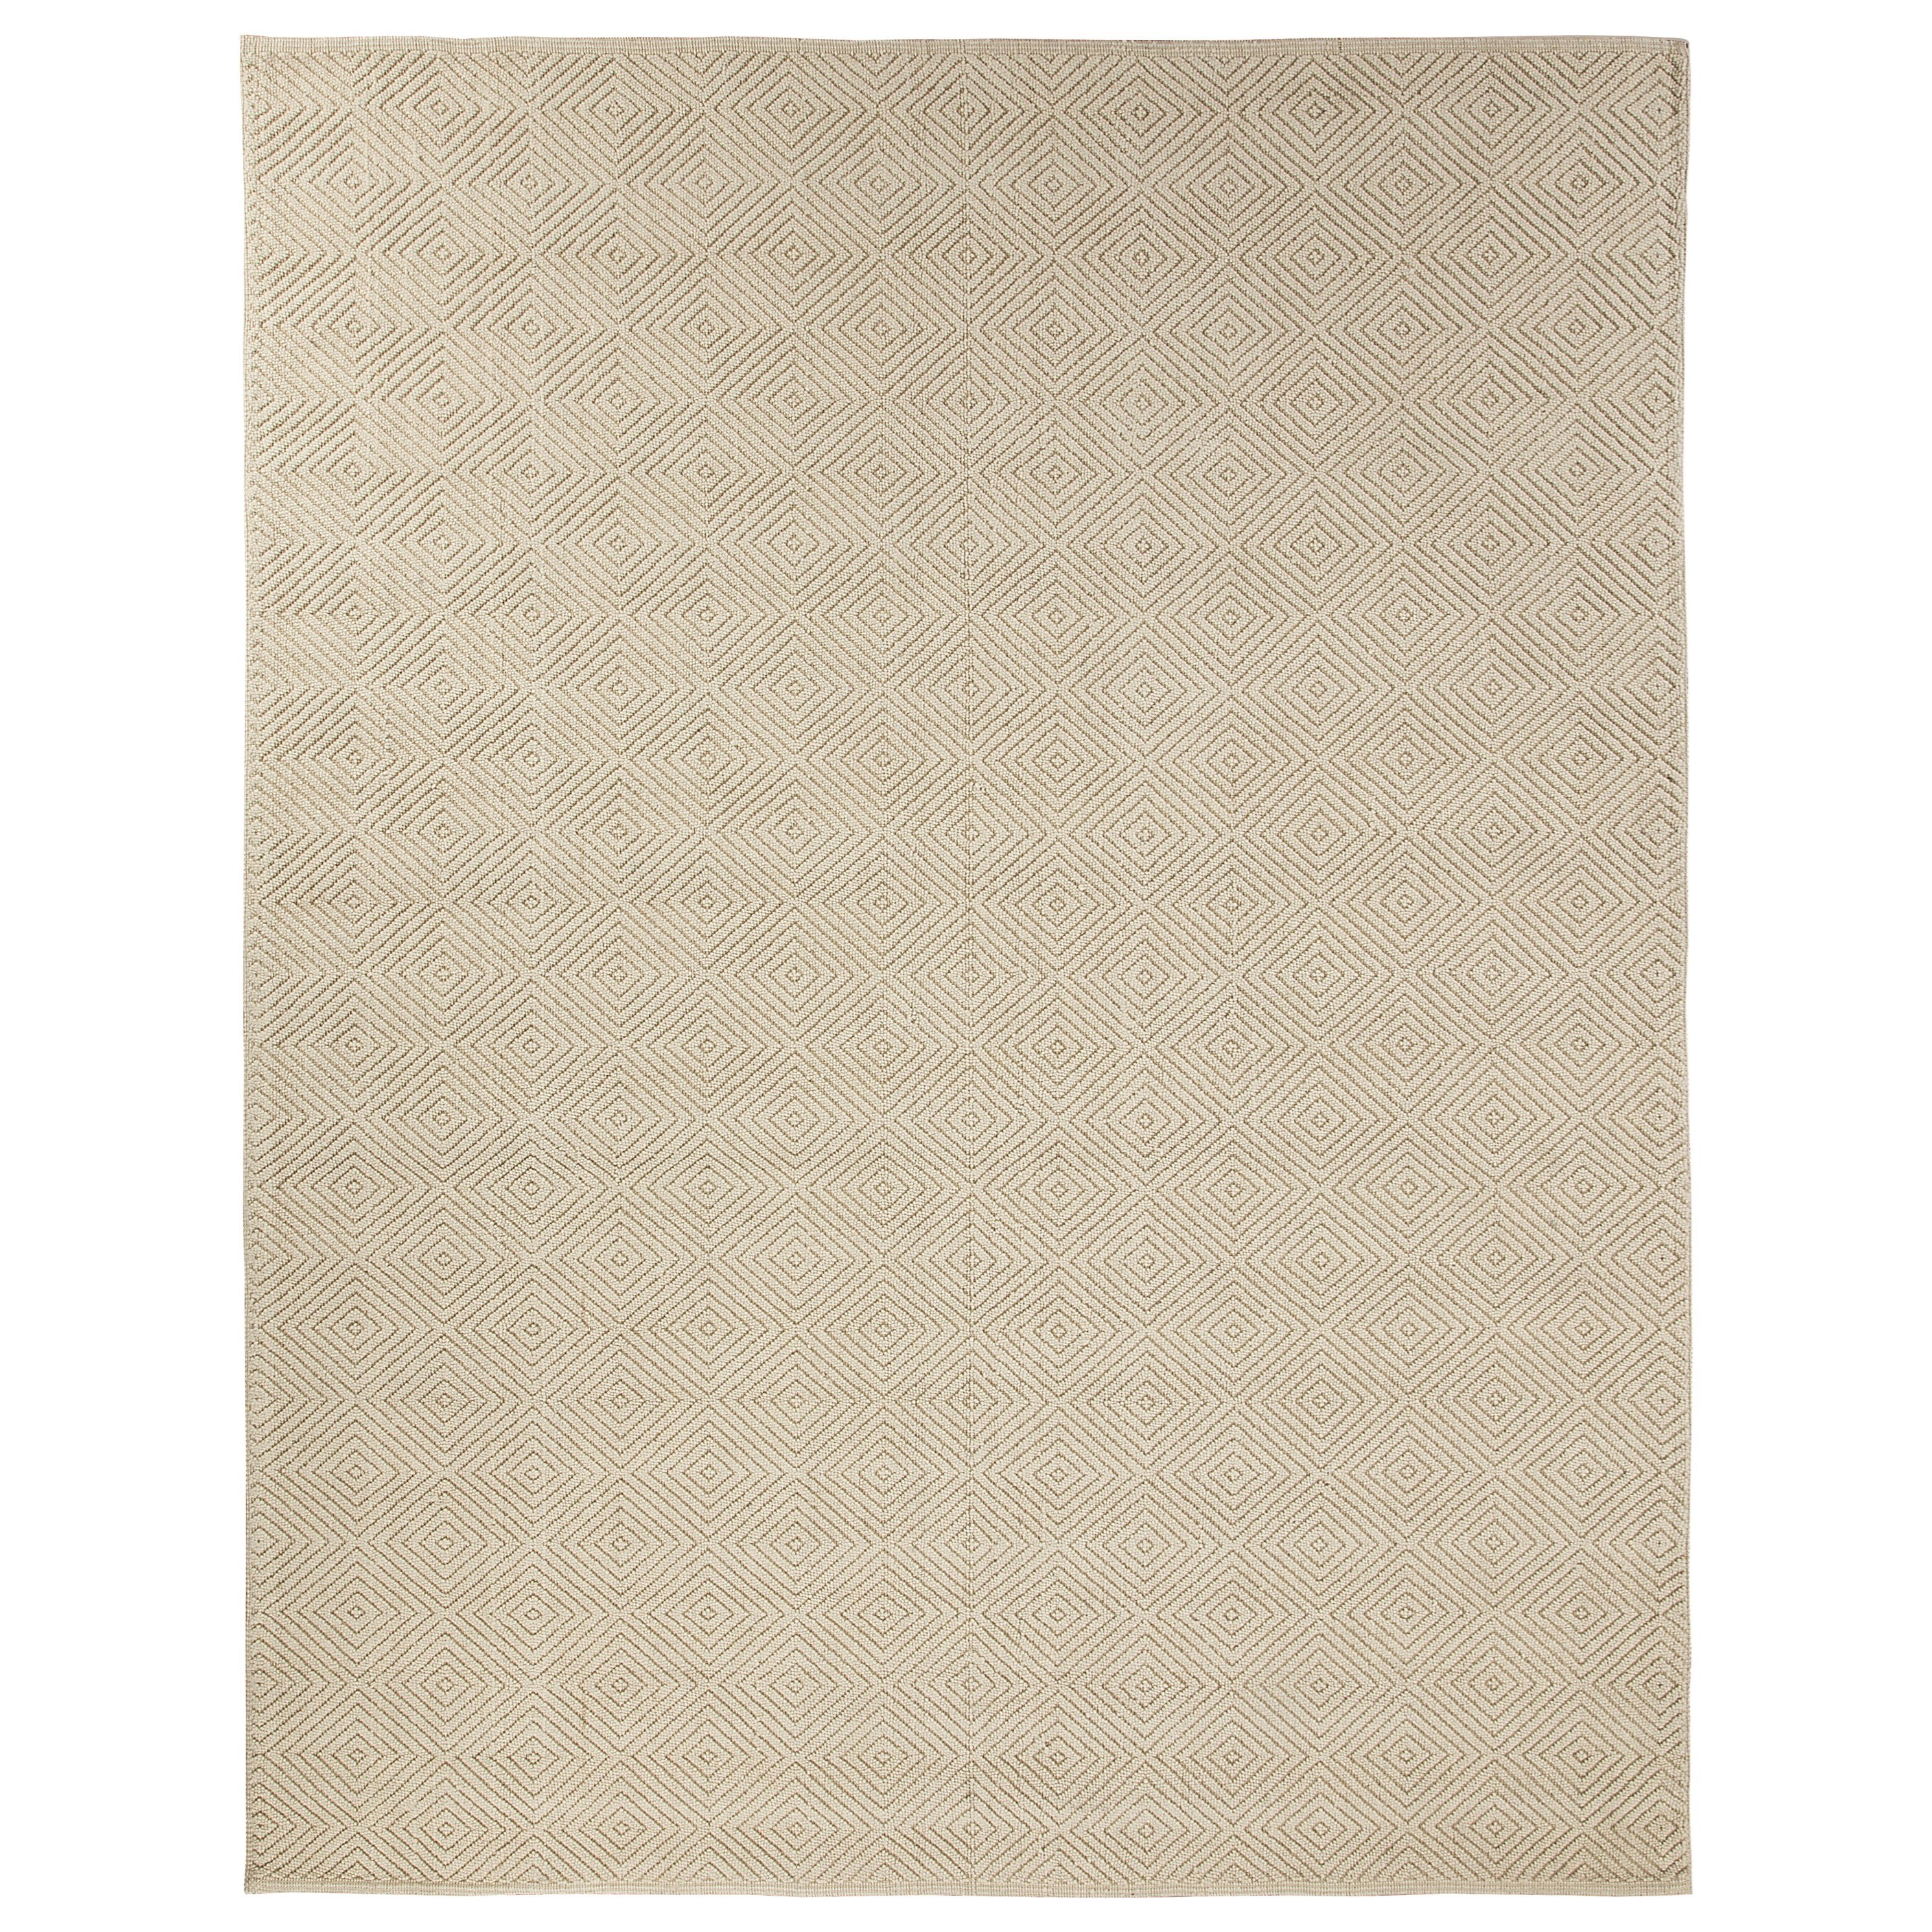 Signature Design by Ashley Casual Area Rugs Harper Ivory Large Rug - Item Number: R400051